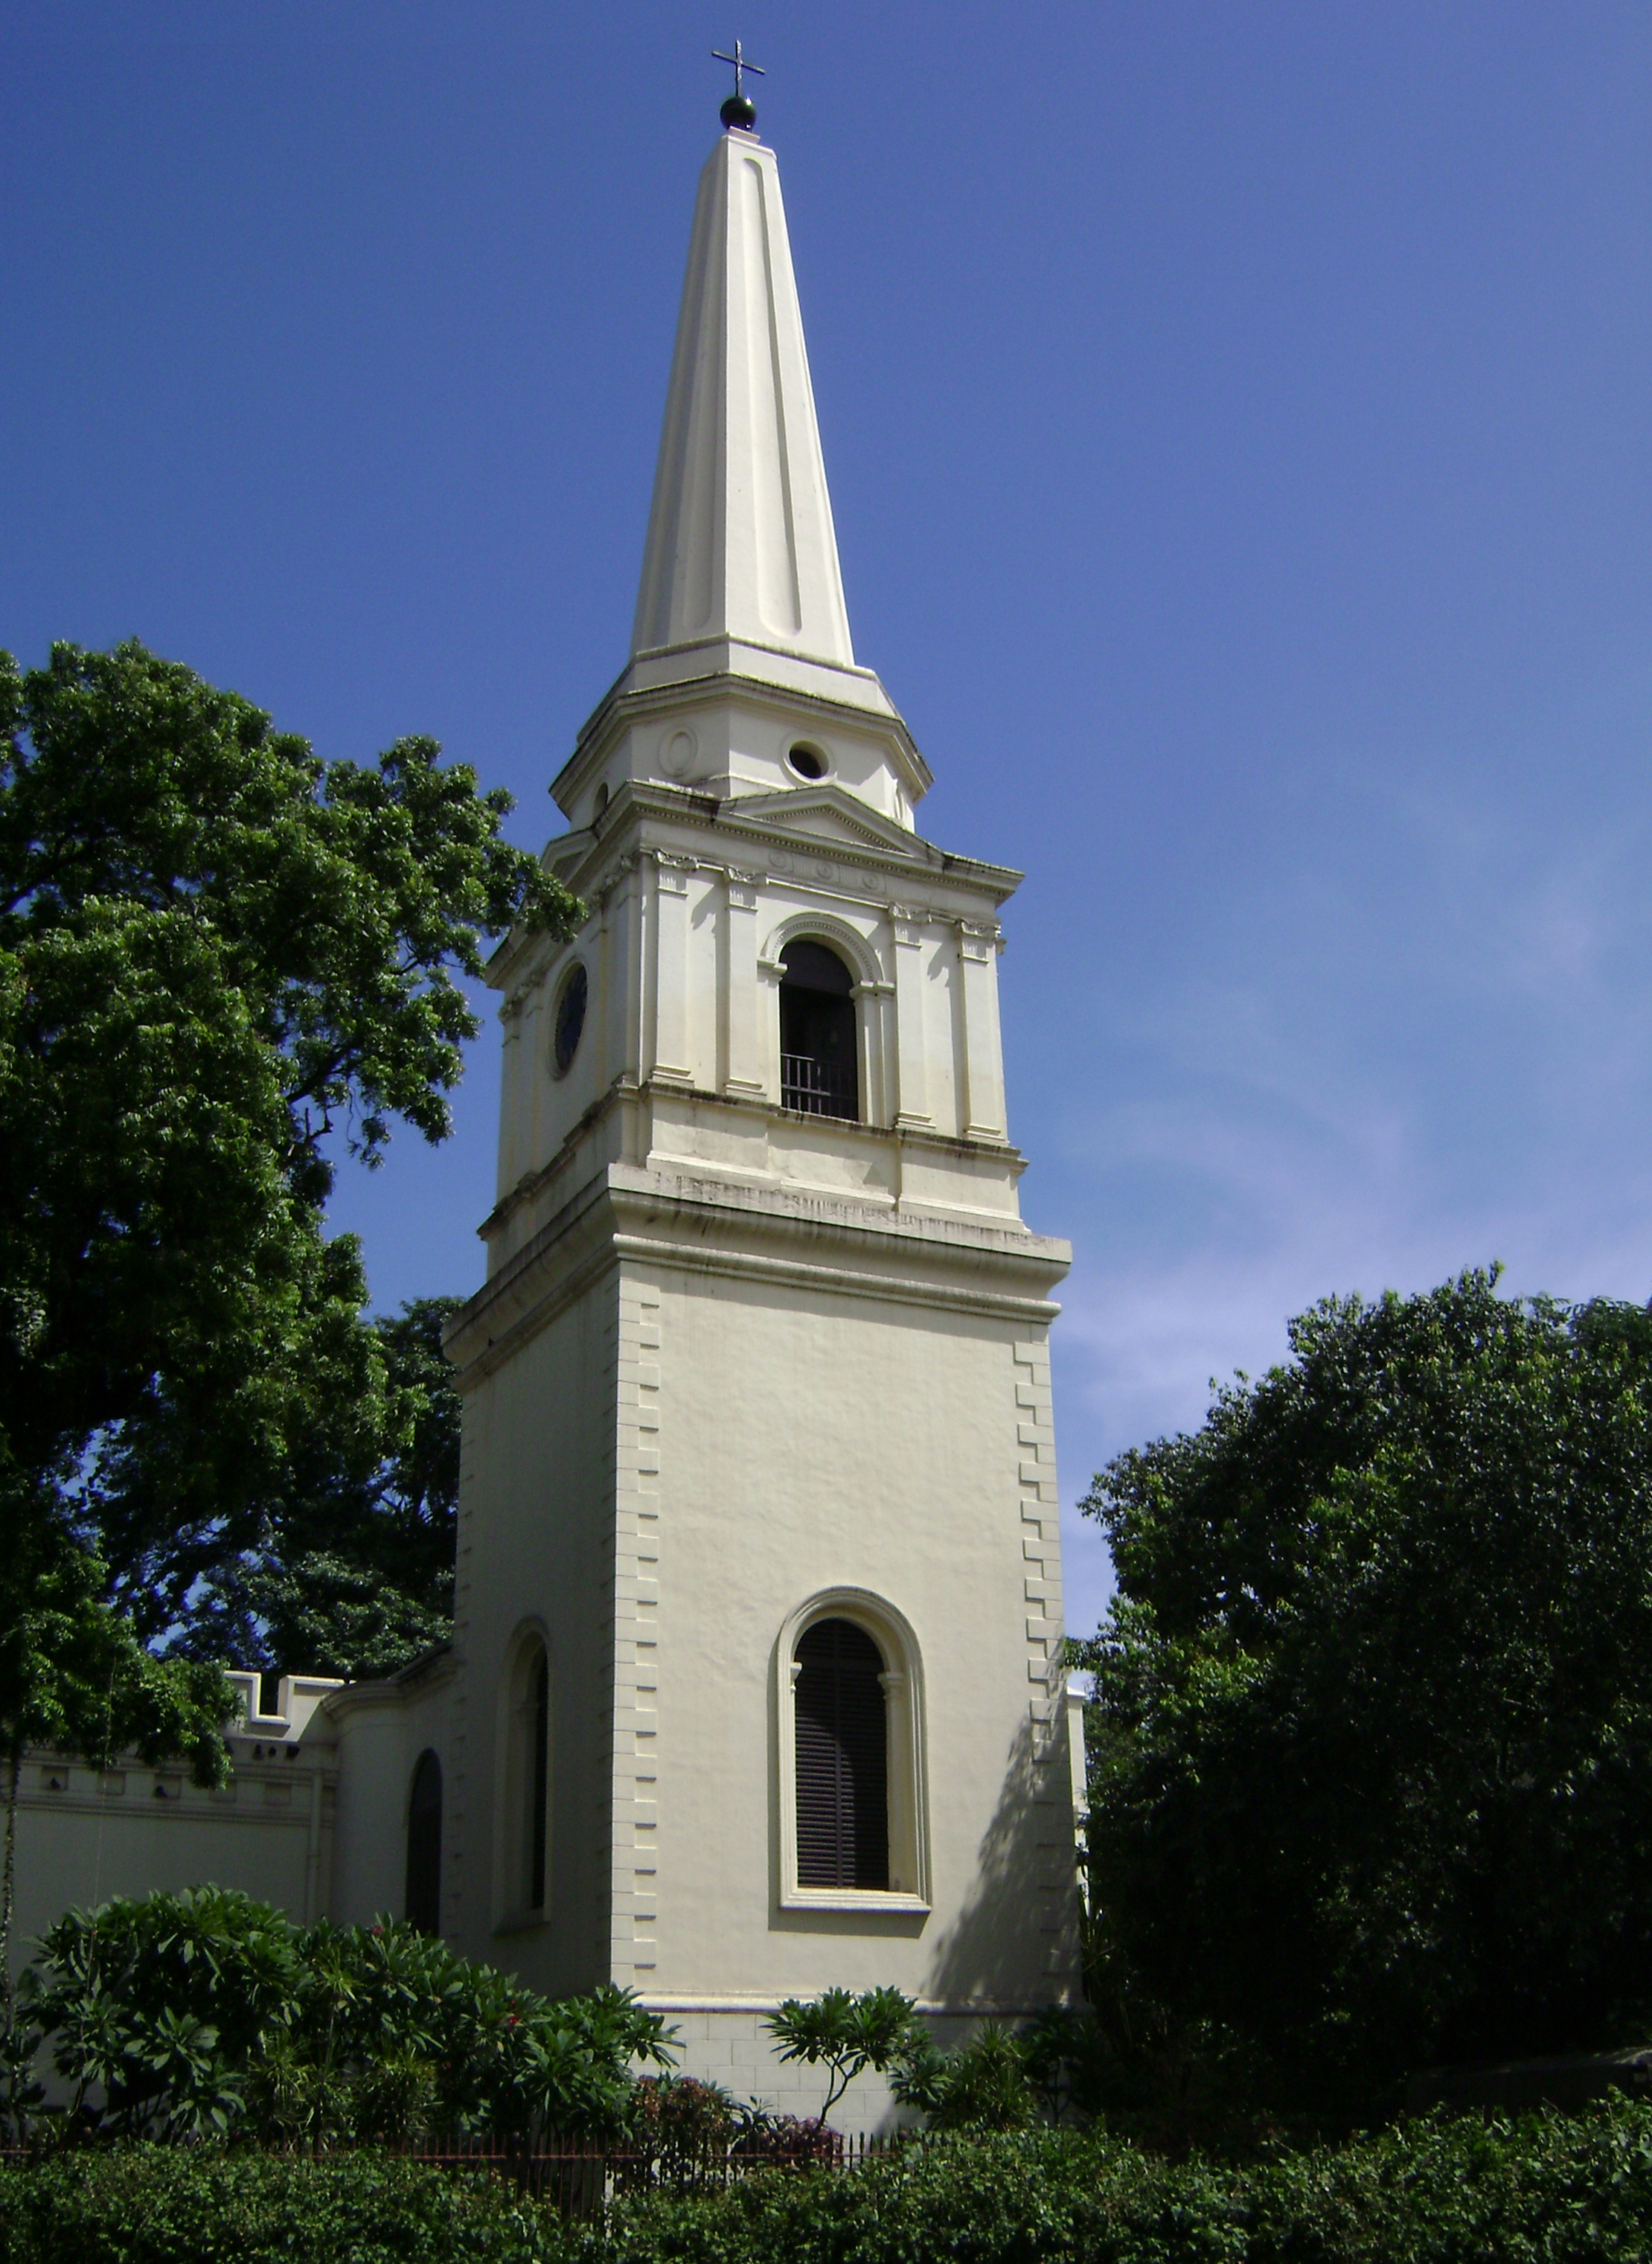 Saint Mary's Church, Chennai